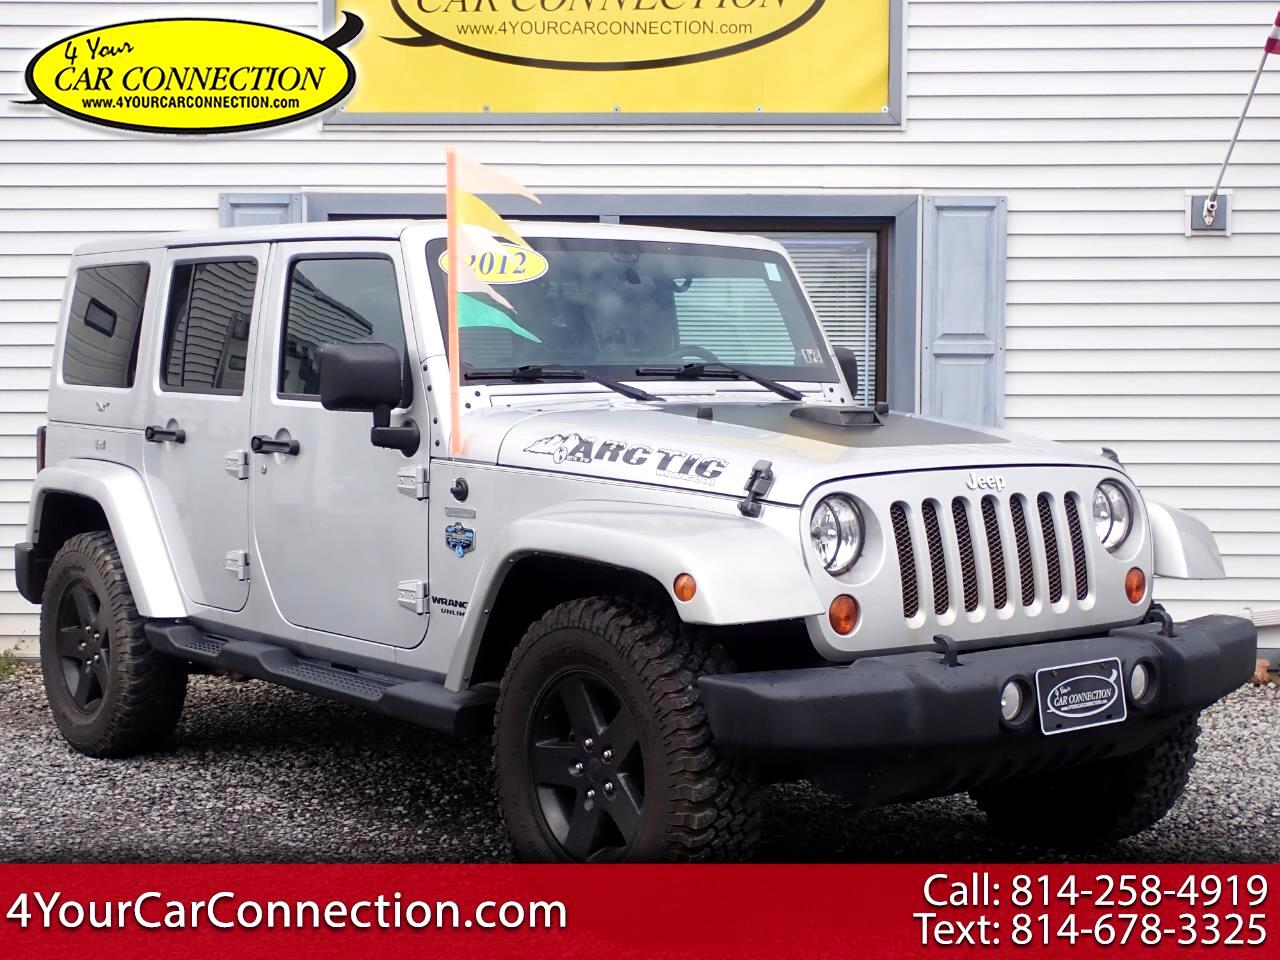 2012 Jeep Wrangler Unlimited Sahara Arctic Edition 4WD